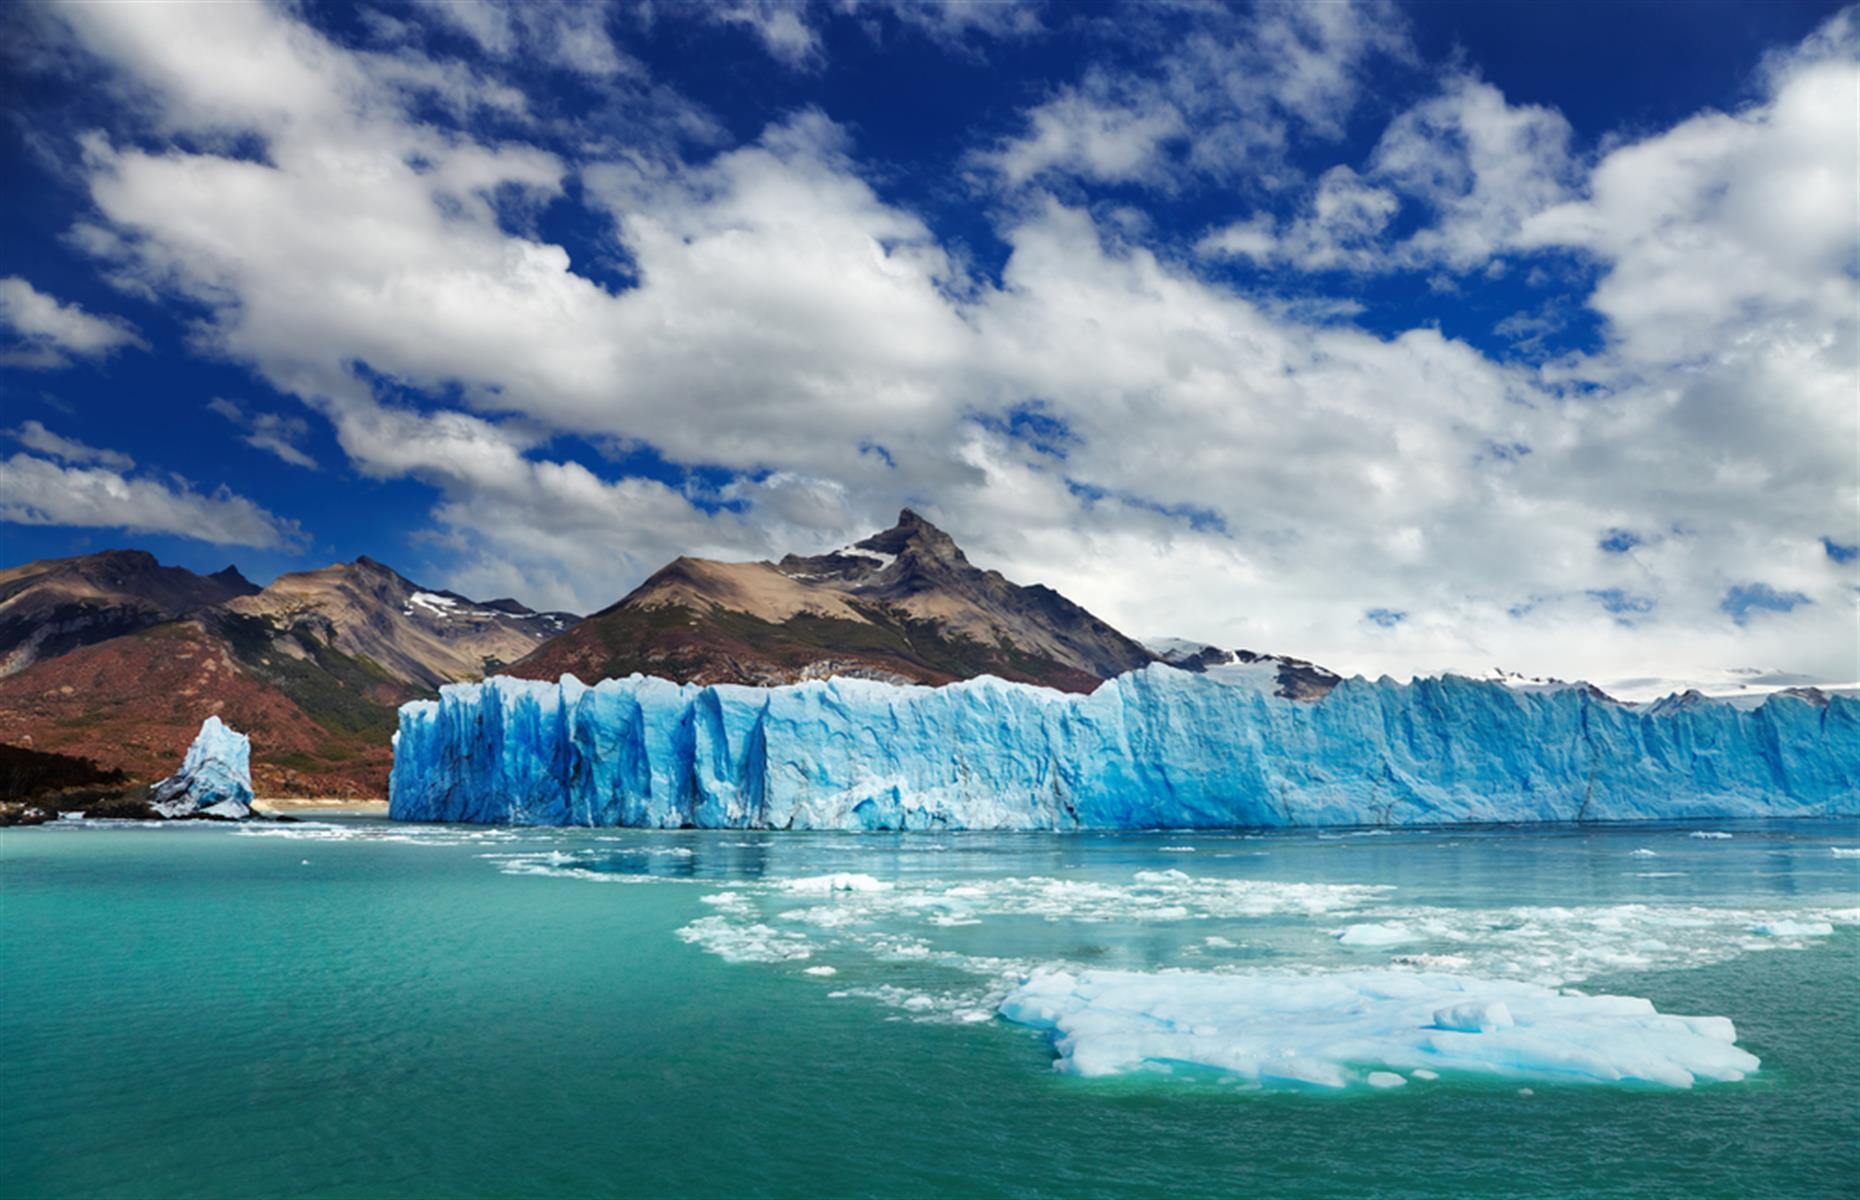 Slide 28 of 33: Located in Los Glaciares National Park, in the Santa Cruz province of Patagonia, Perito Moreno is a glacial giant measuring a staggering 18.6 miles (30km) in length. While many of the glaciers surrounding it are melting, Perito Moreno is actually growing.